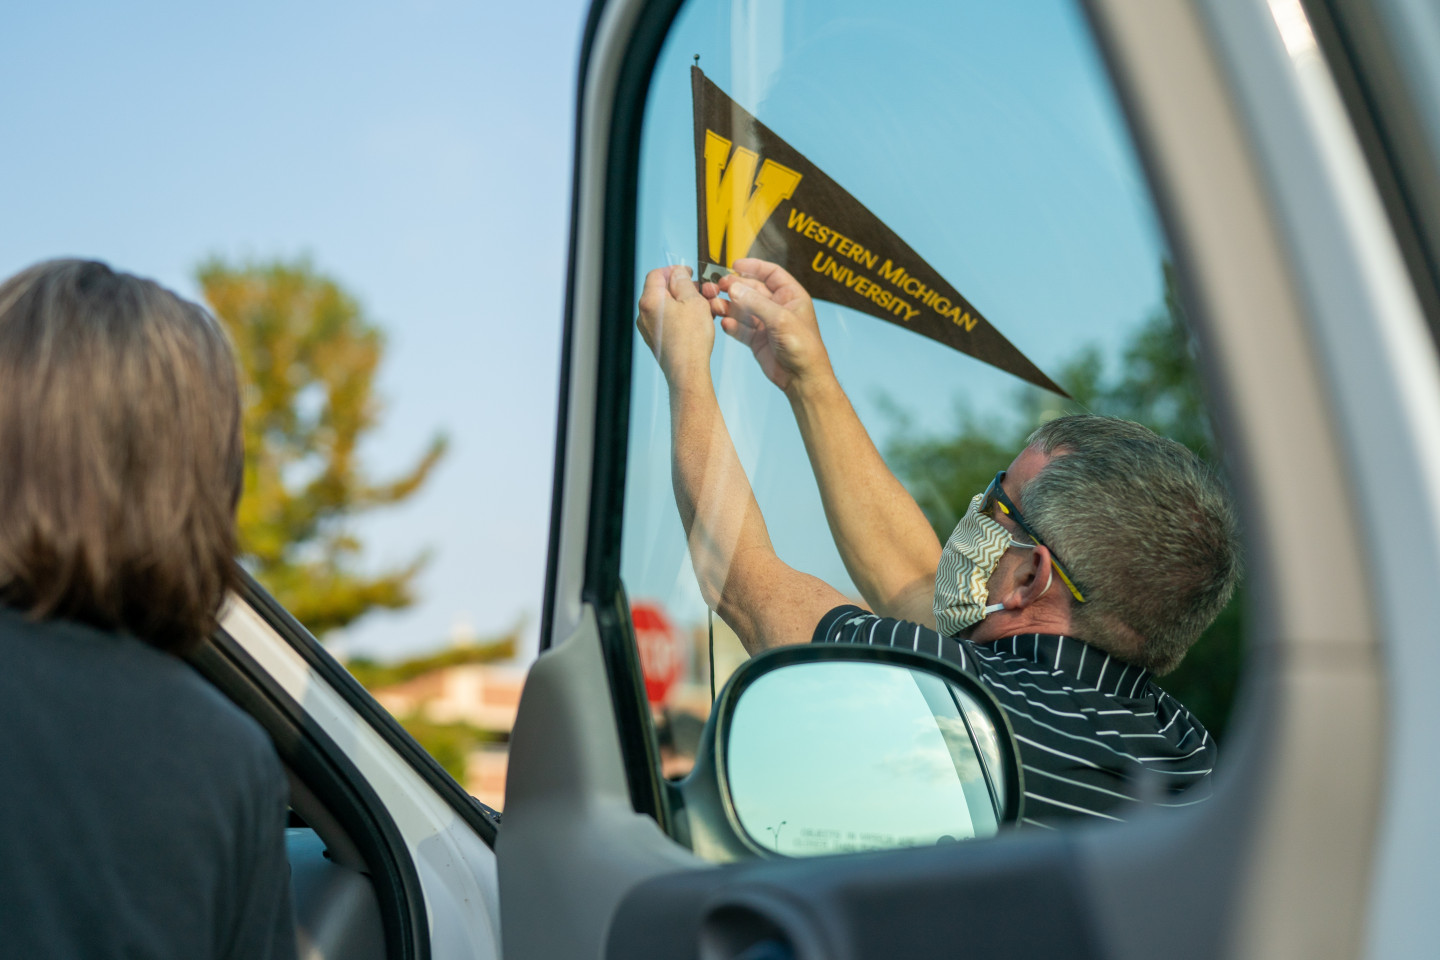 A person puts a Western Michigan University pennant on his car antenna.